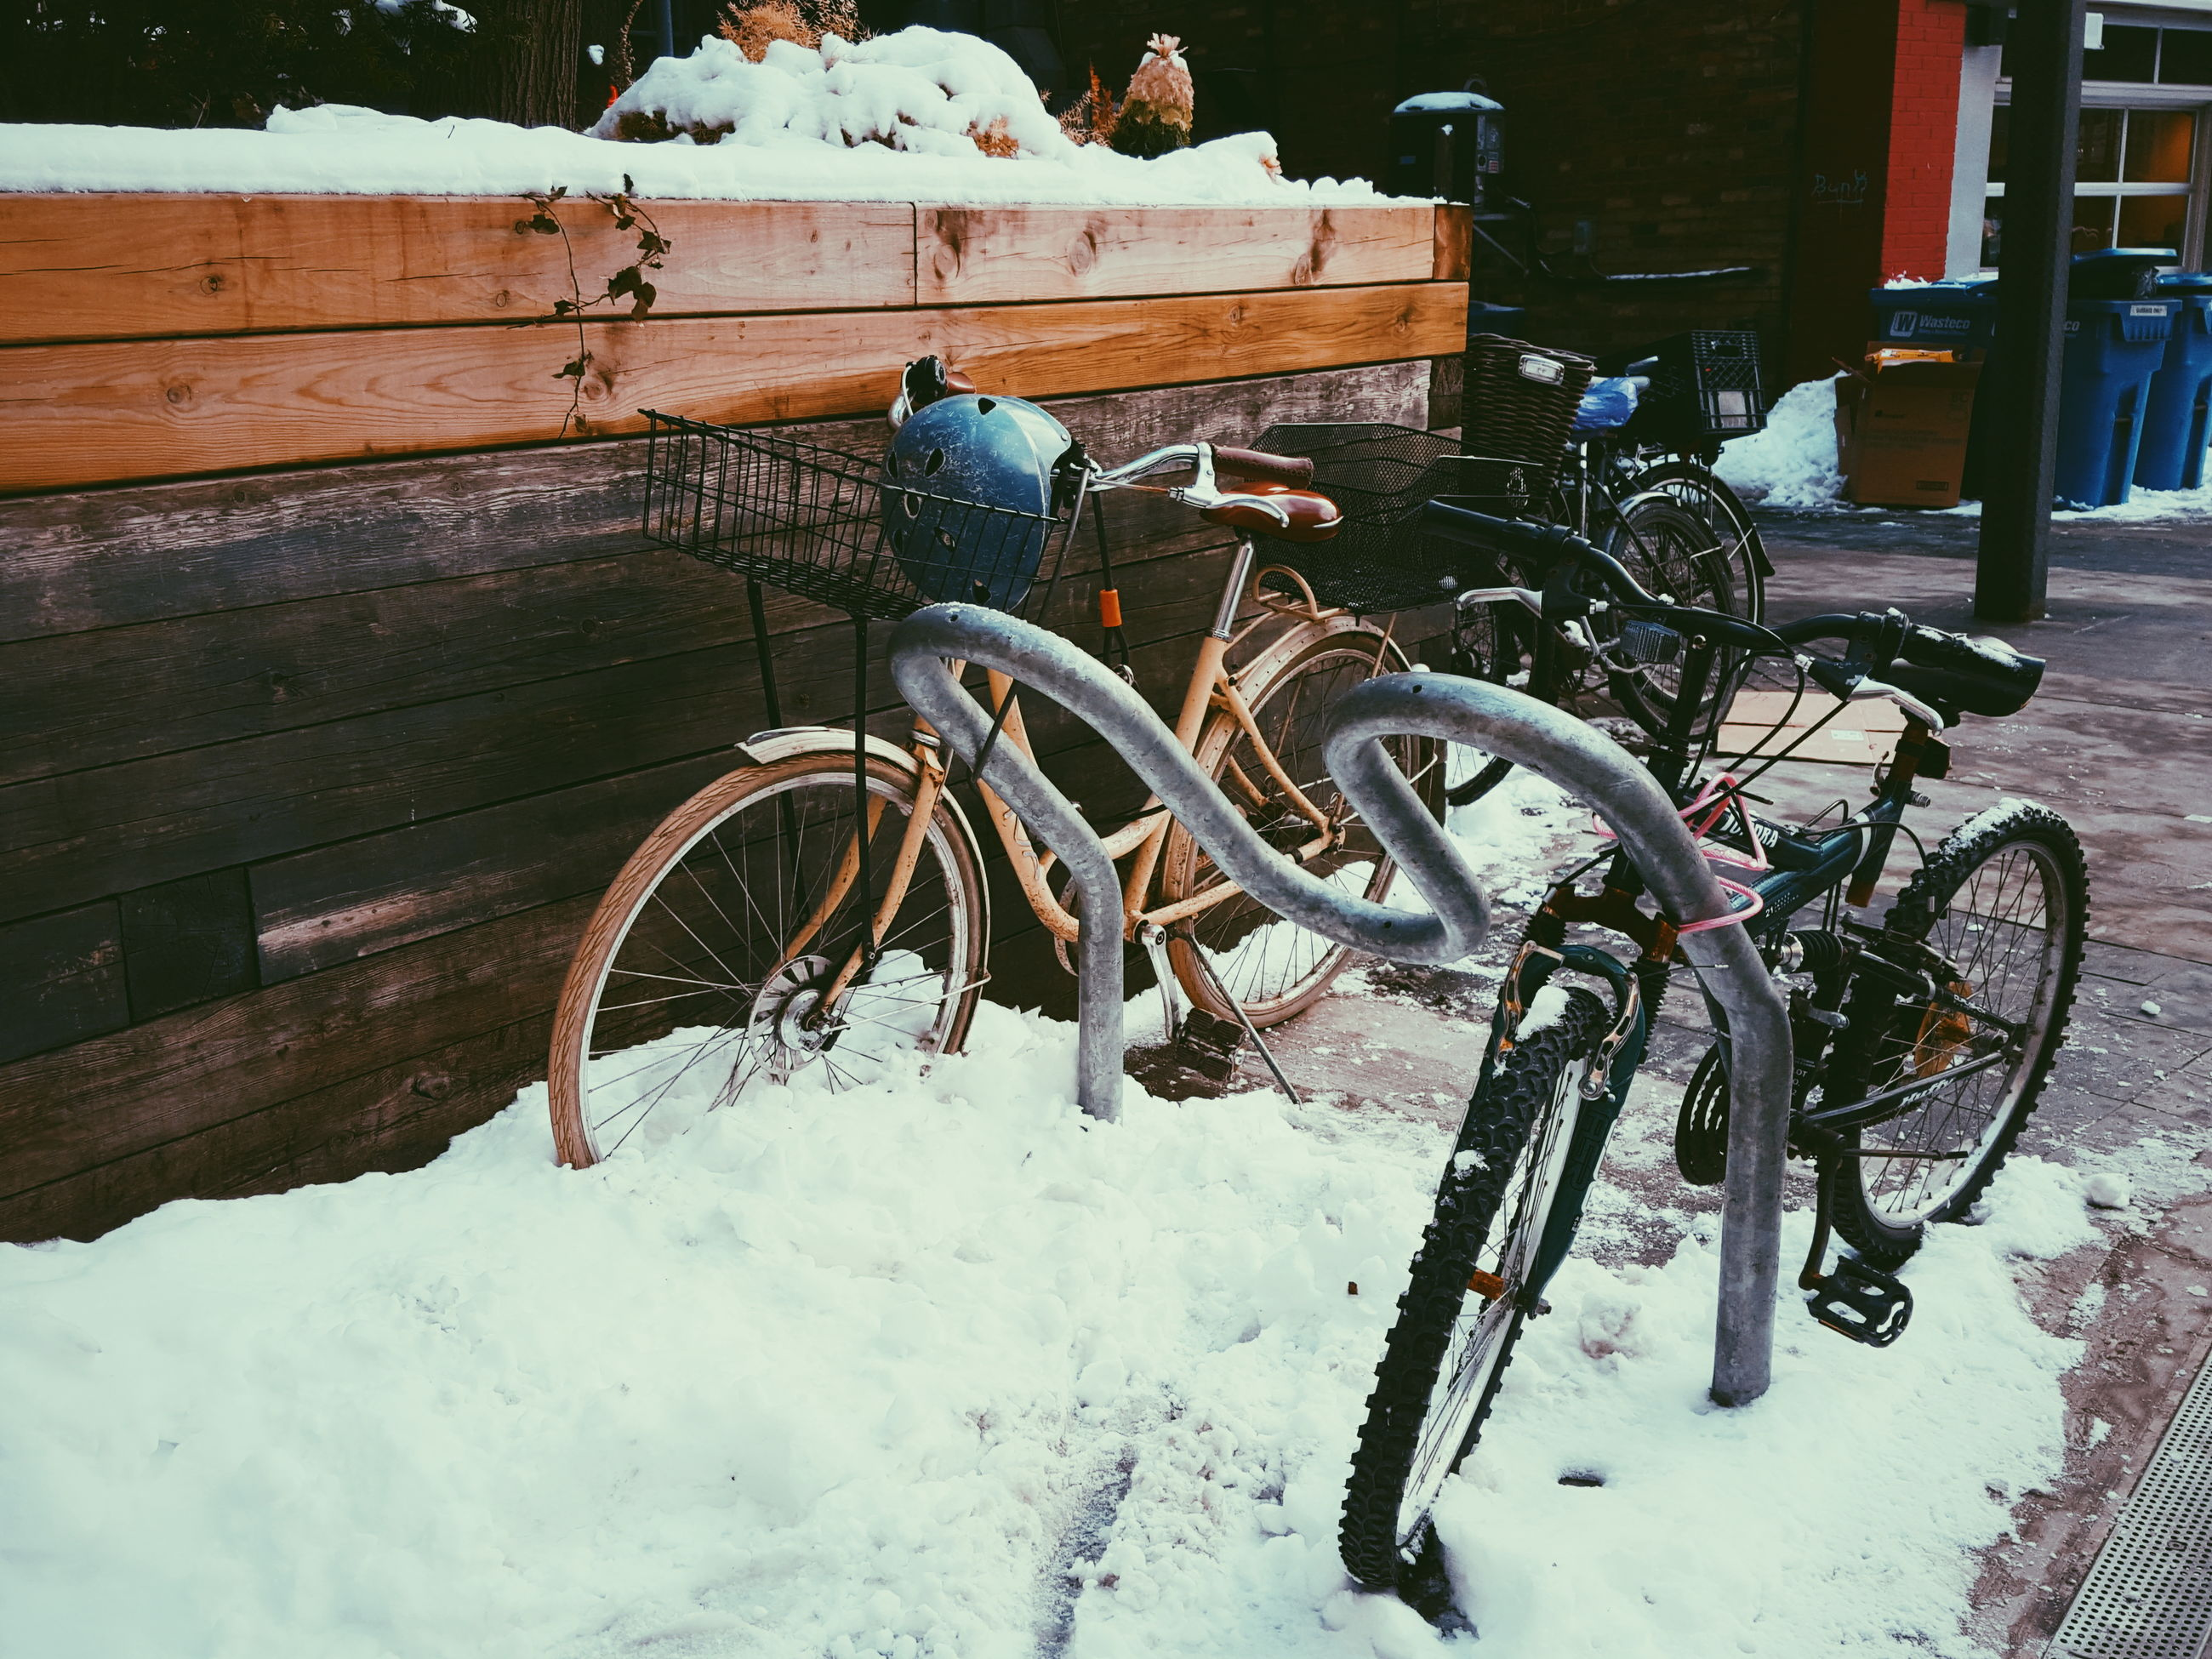 Bicycle parked on snow